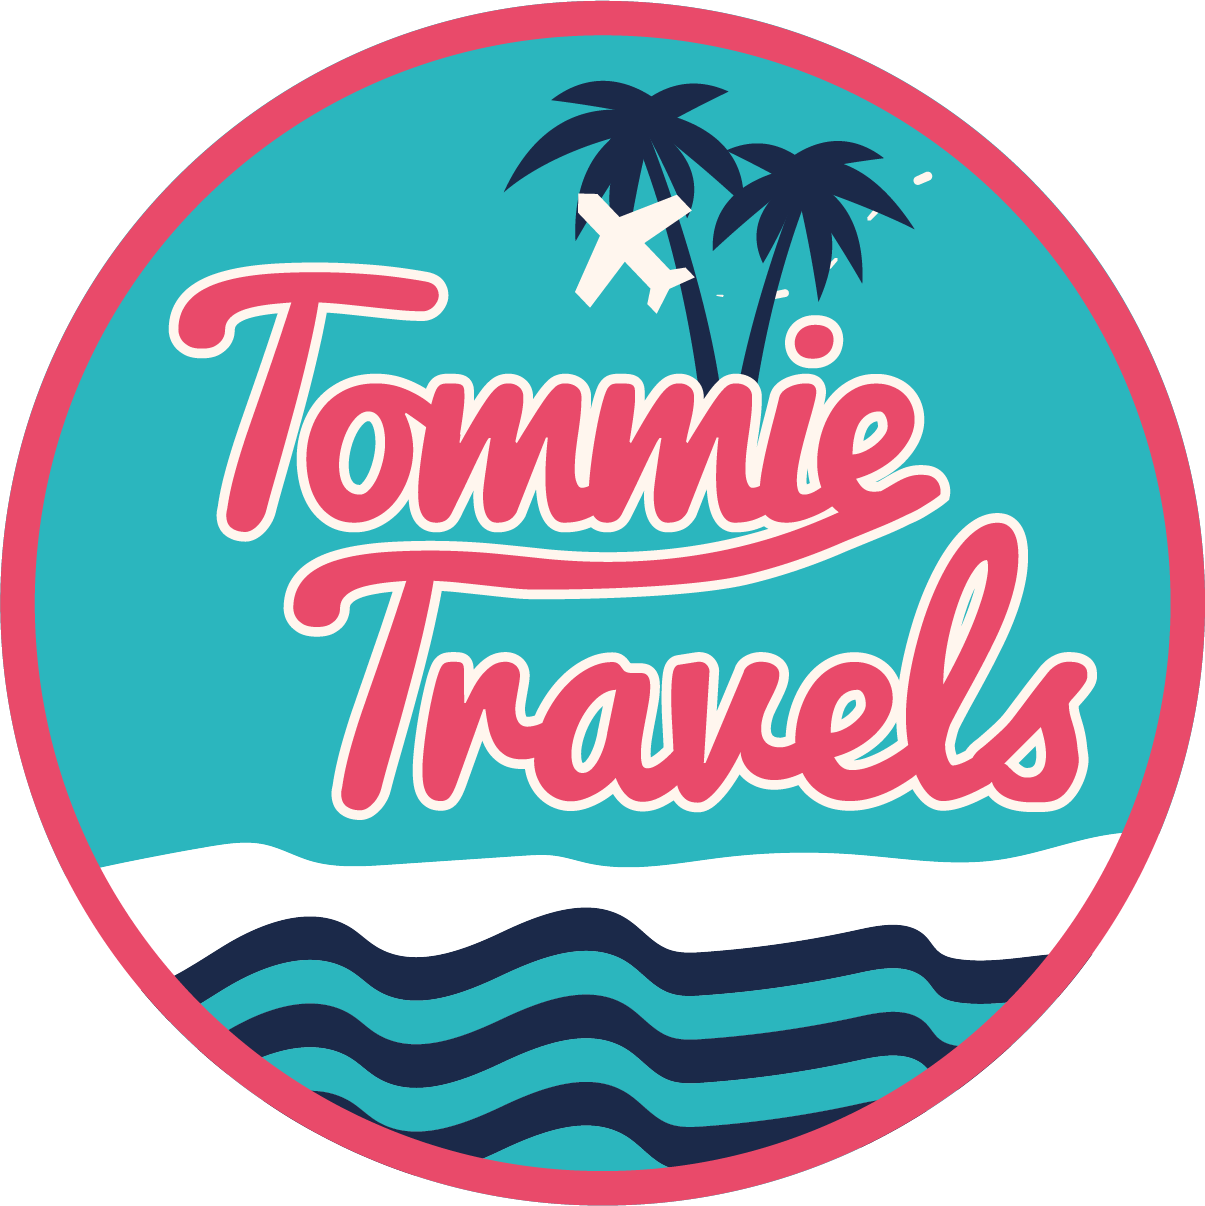 Tommie Travels Logo 1